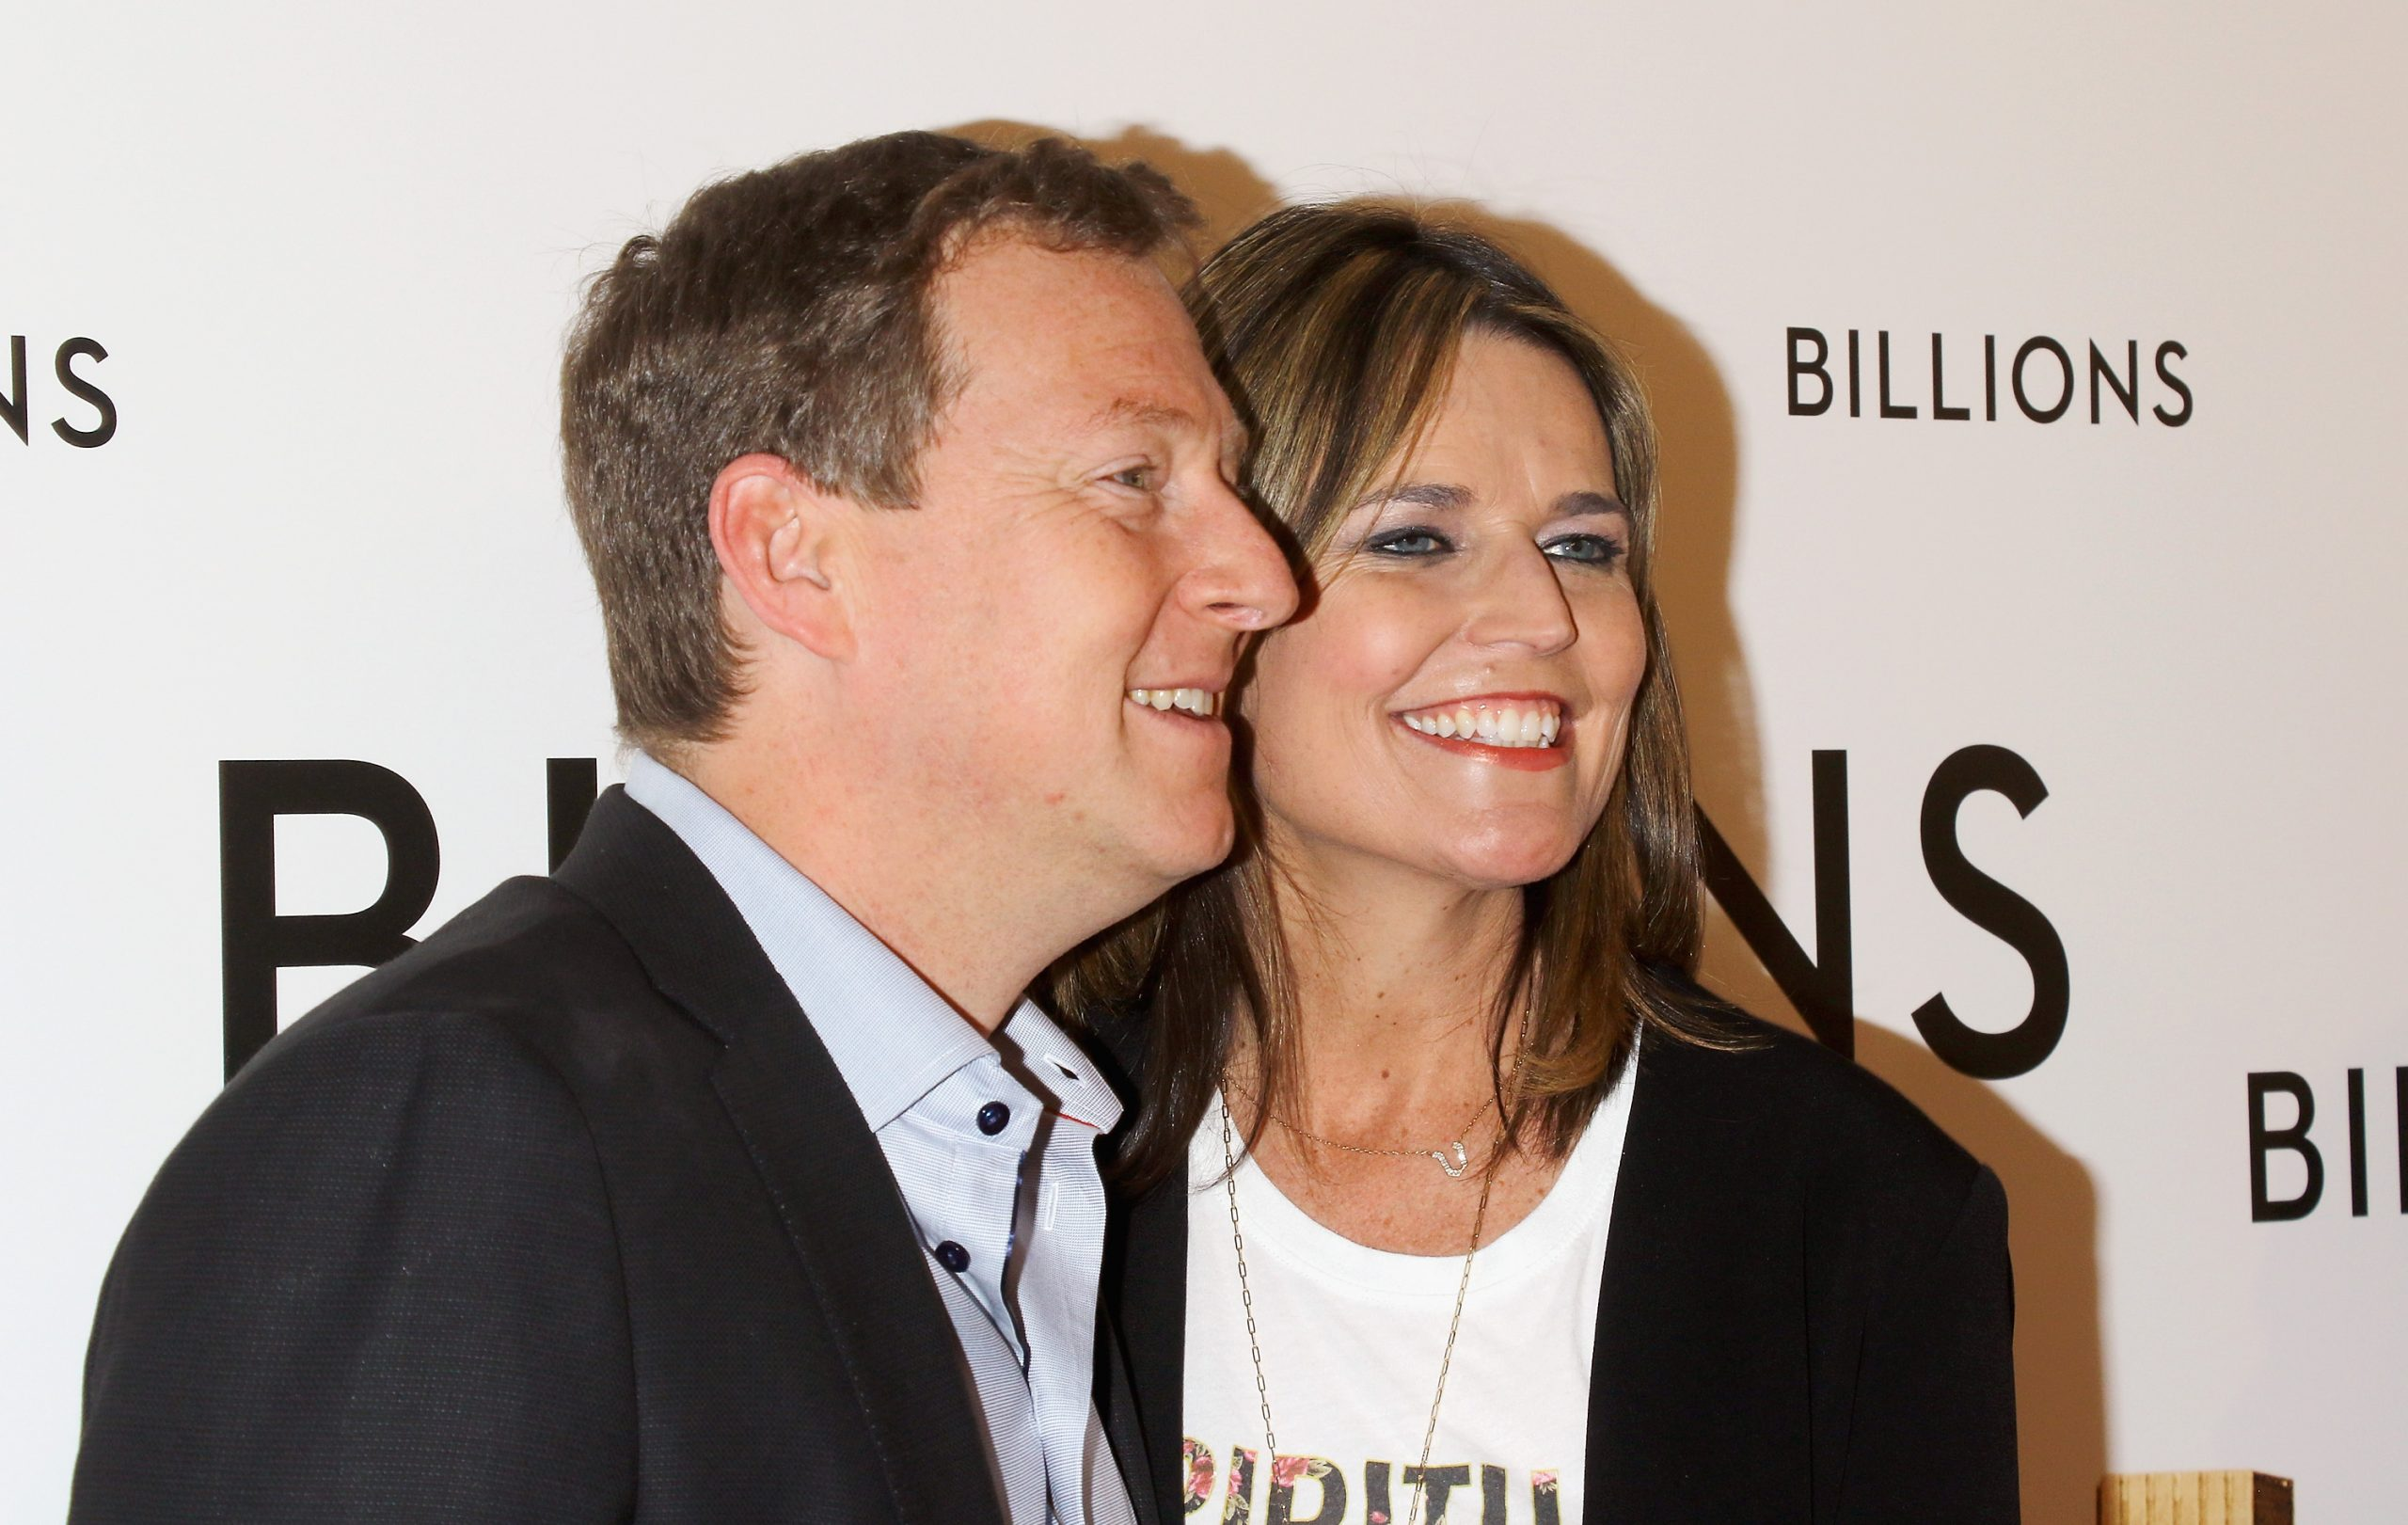 Today Show Savannah Guthrie Admits It Took Her Some Time To Realize When Her Husband Proposed